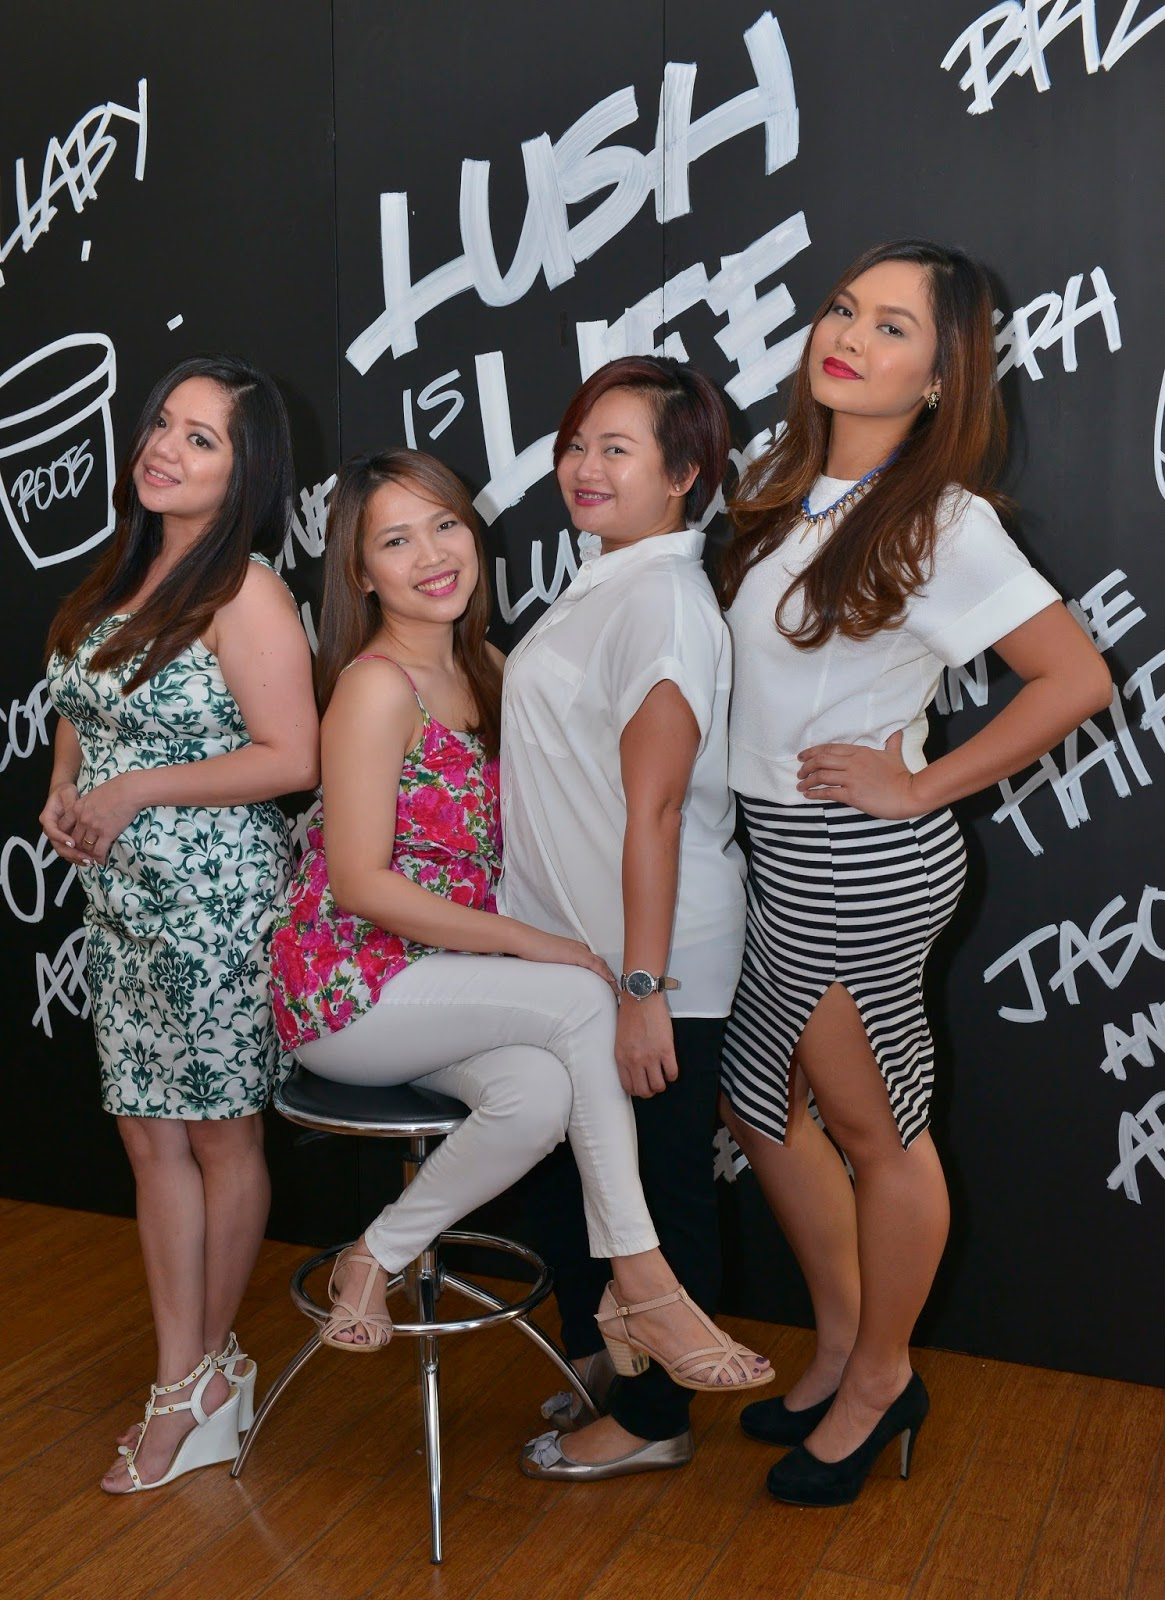 Lush New Shampoo Bars Launch at Piandre Salon